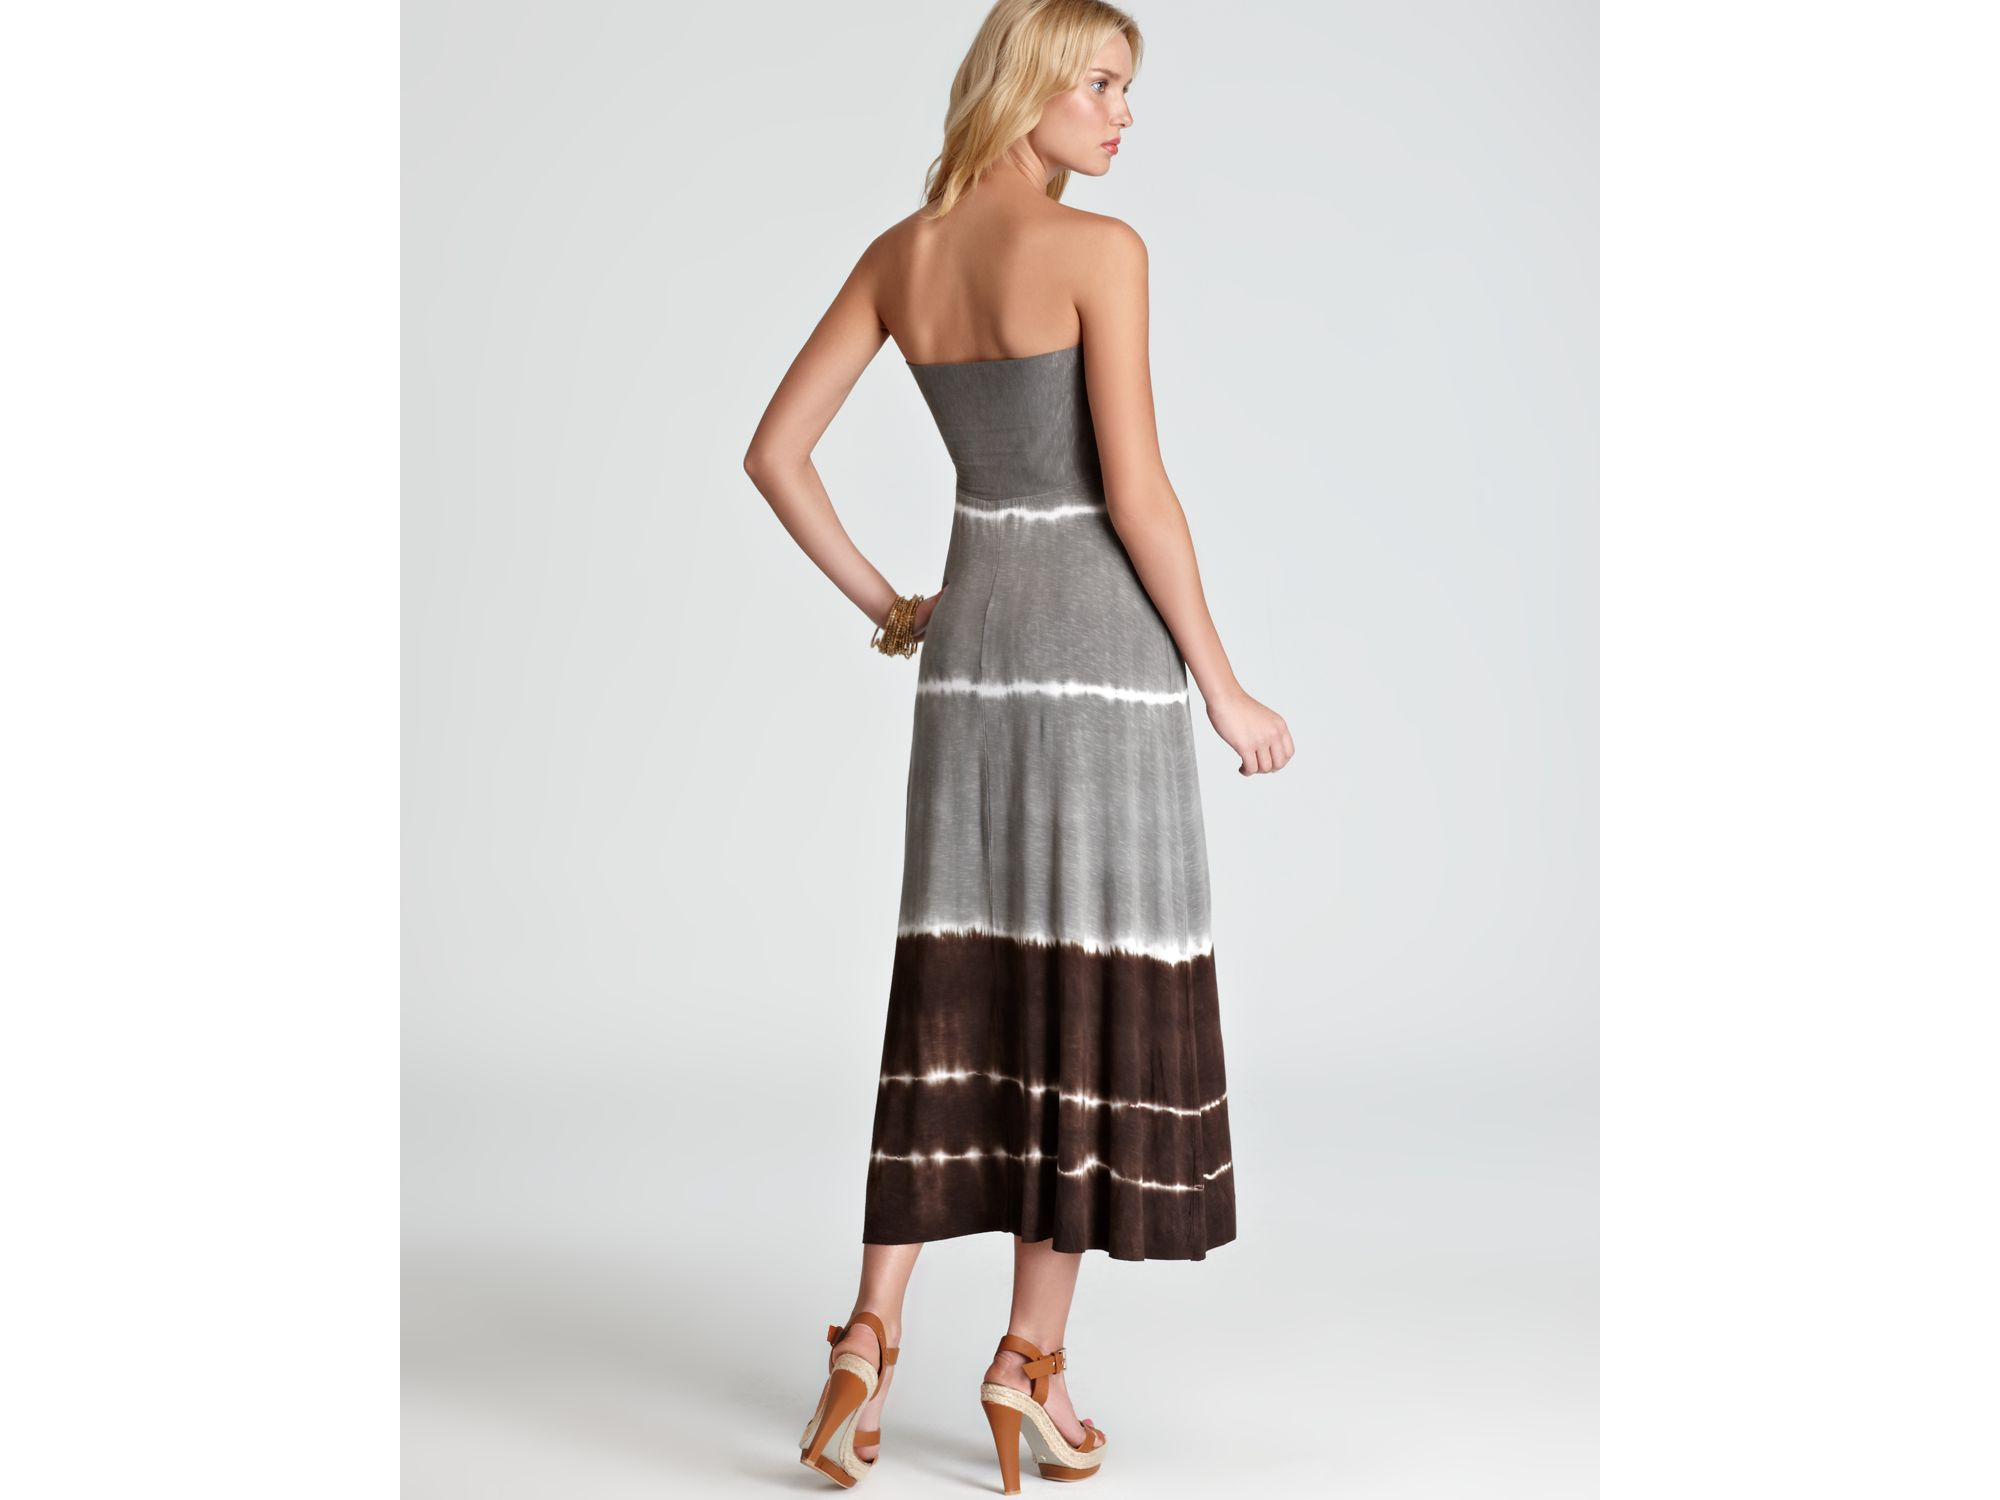 e7a8f10fbd Lyst - Lucky Brand Summer Lovin Convertible Tube Dress Swim Cover Up ...